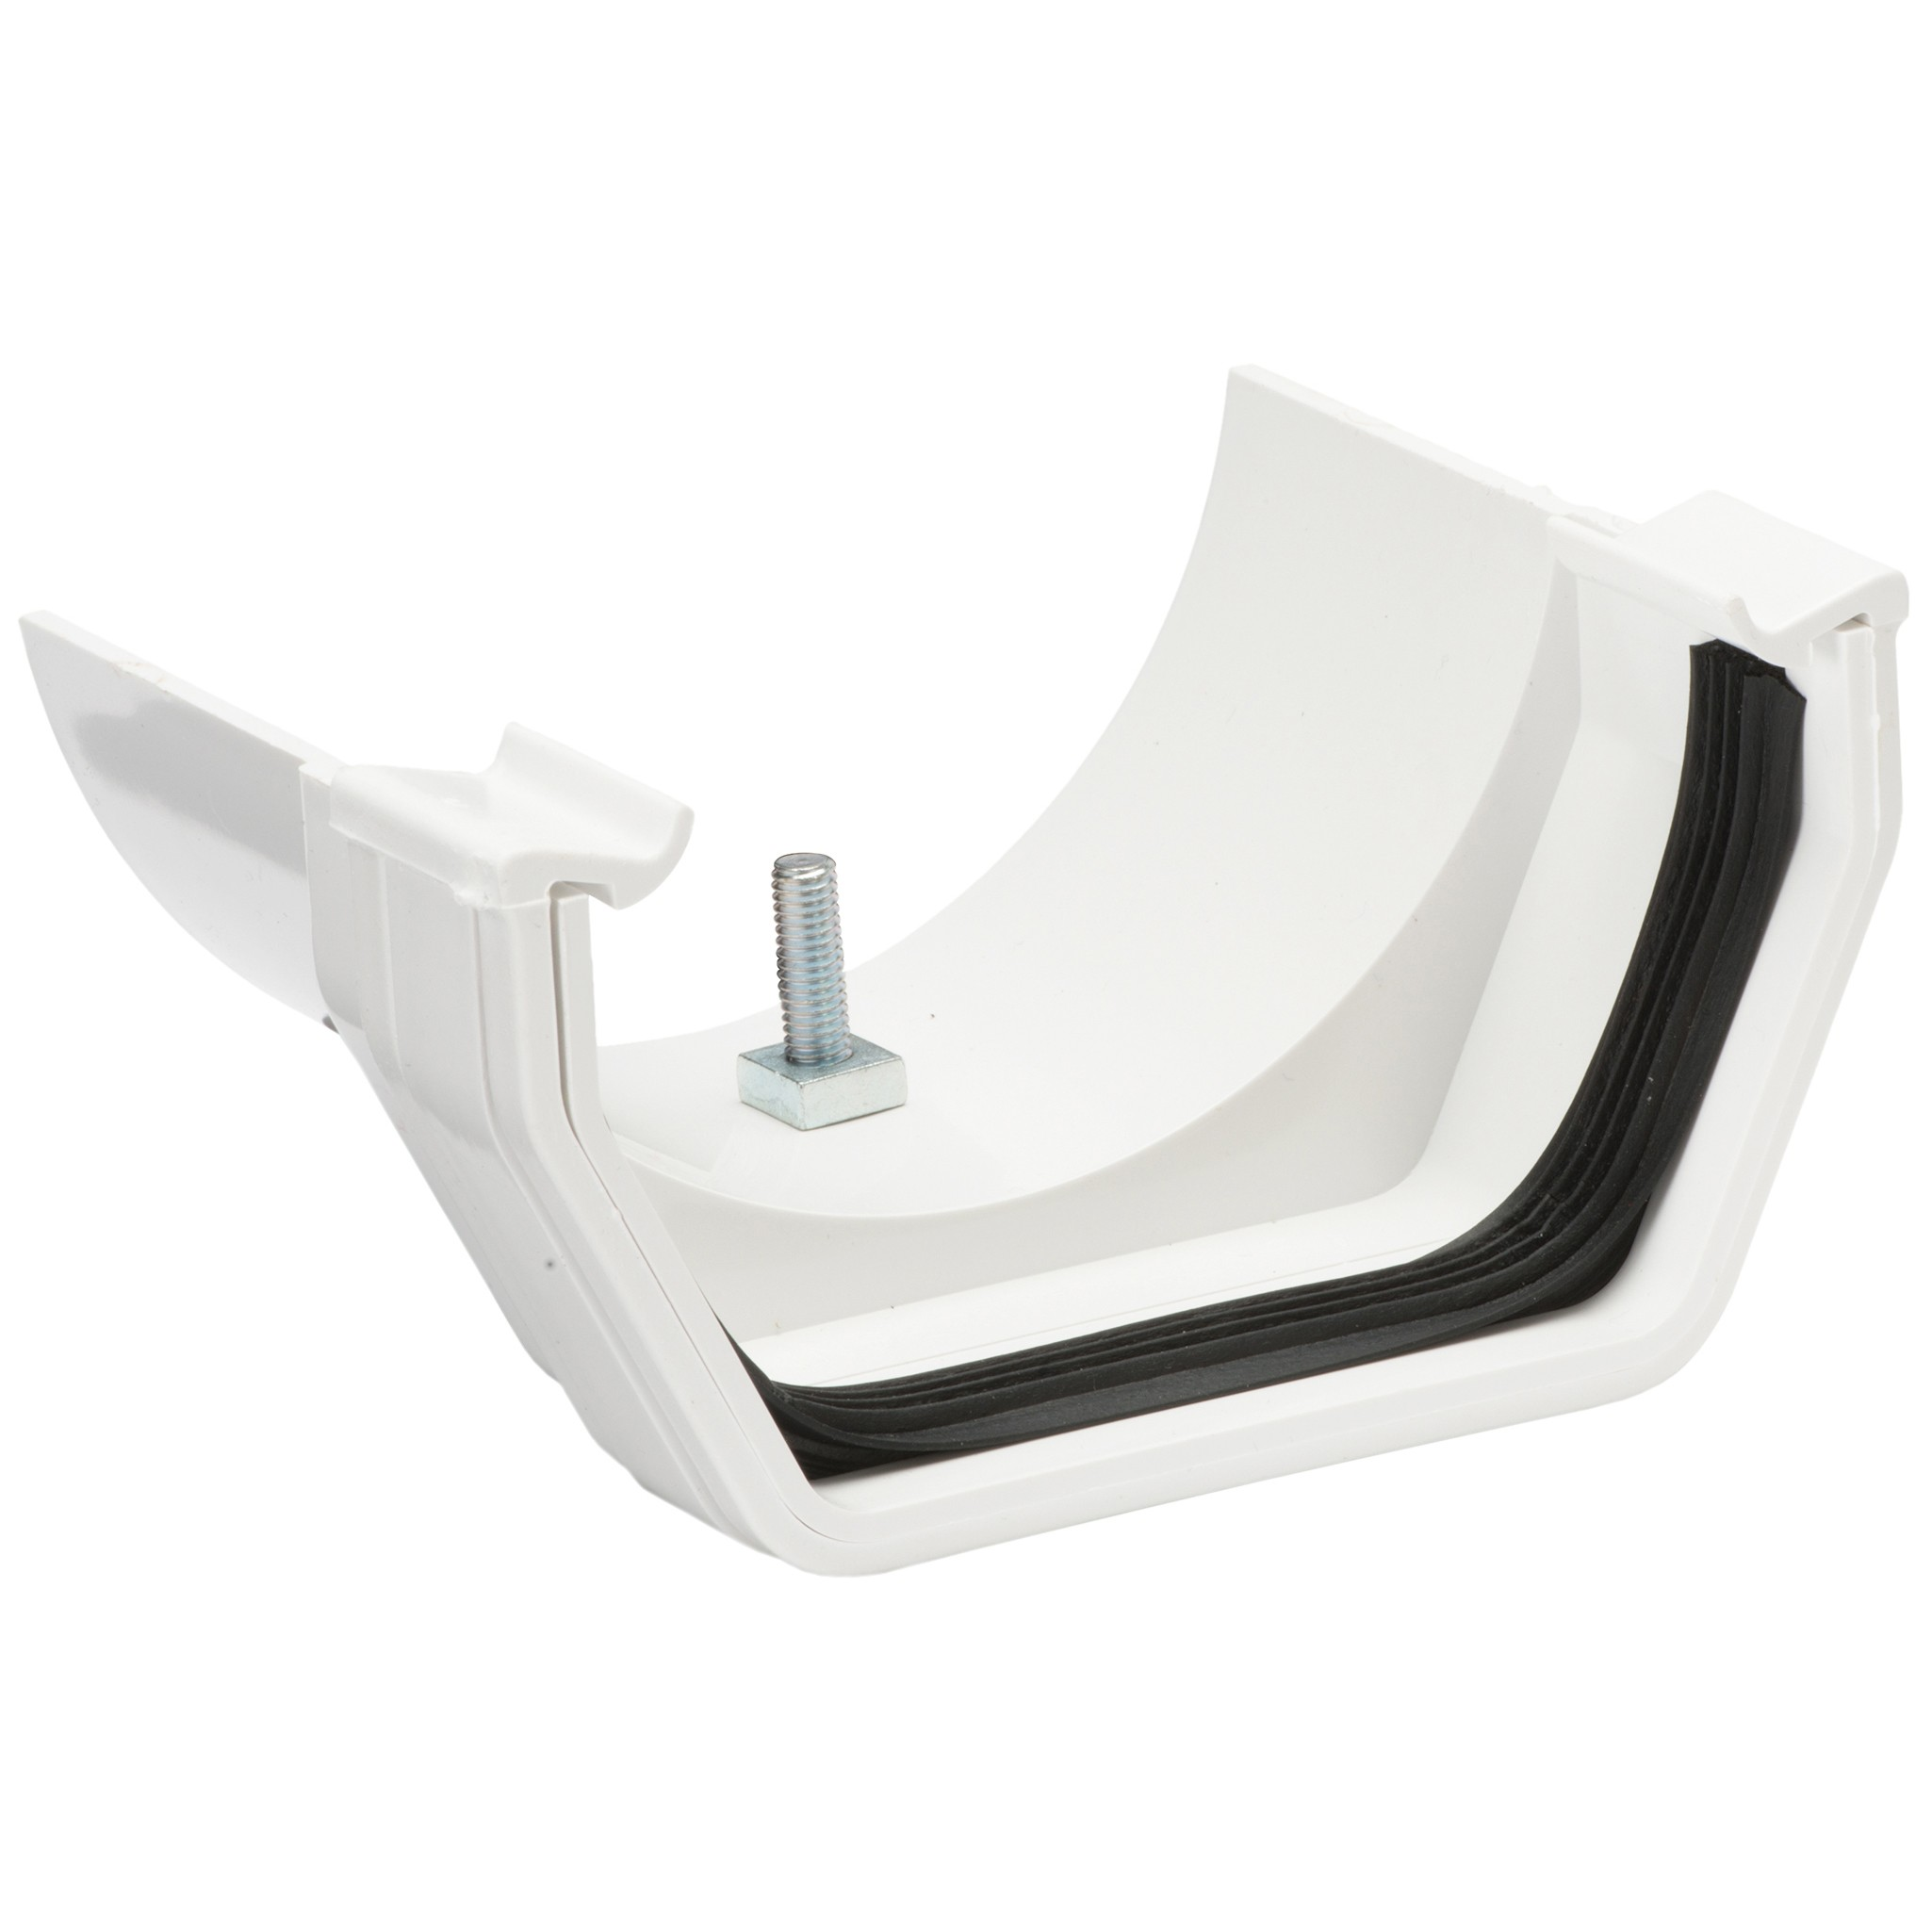 Polypipe 112mm Square to 112mm Half Round Gutter Adaptor - White